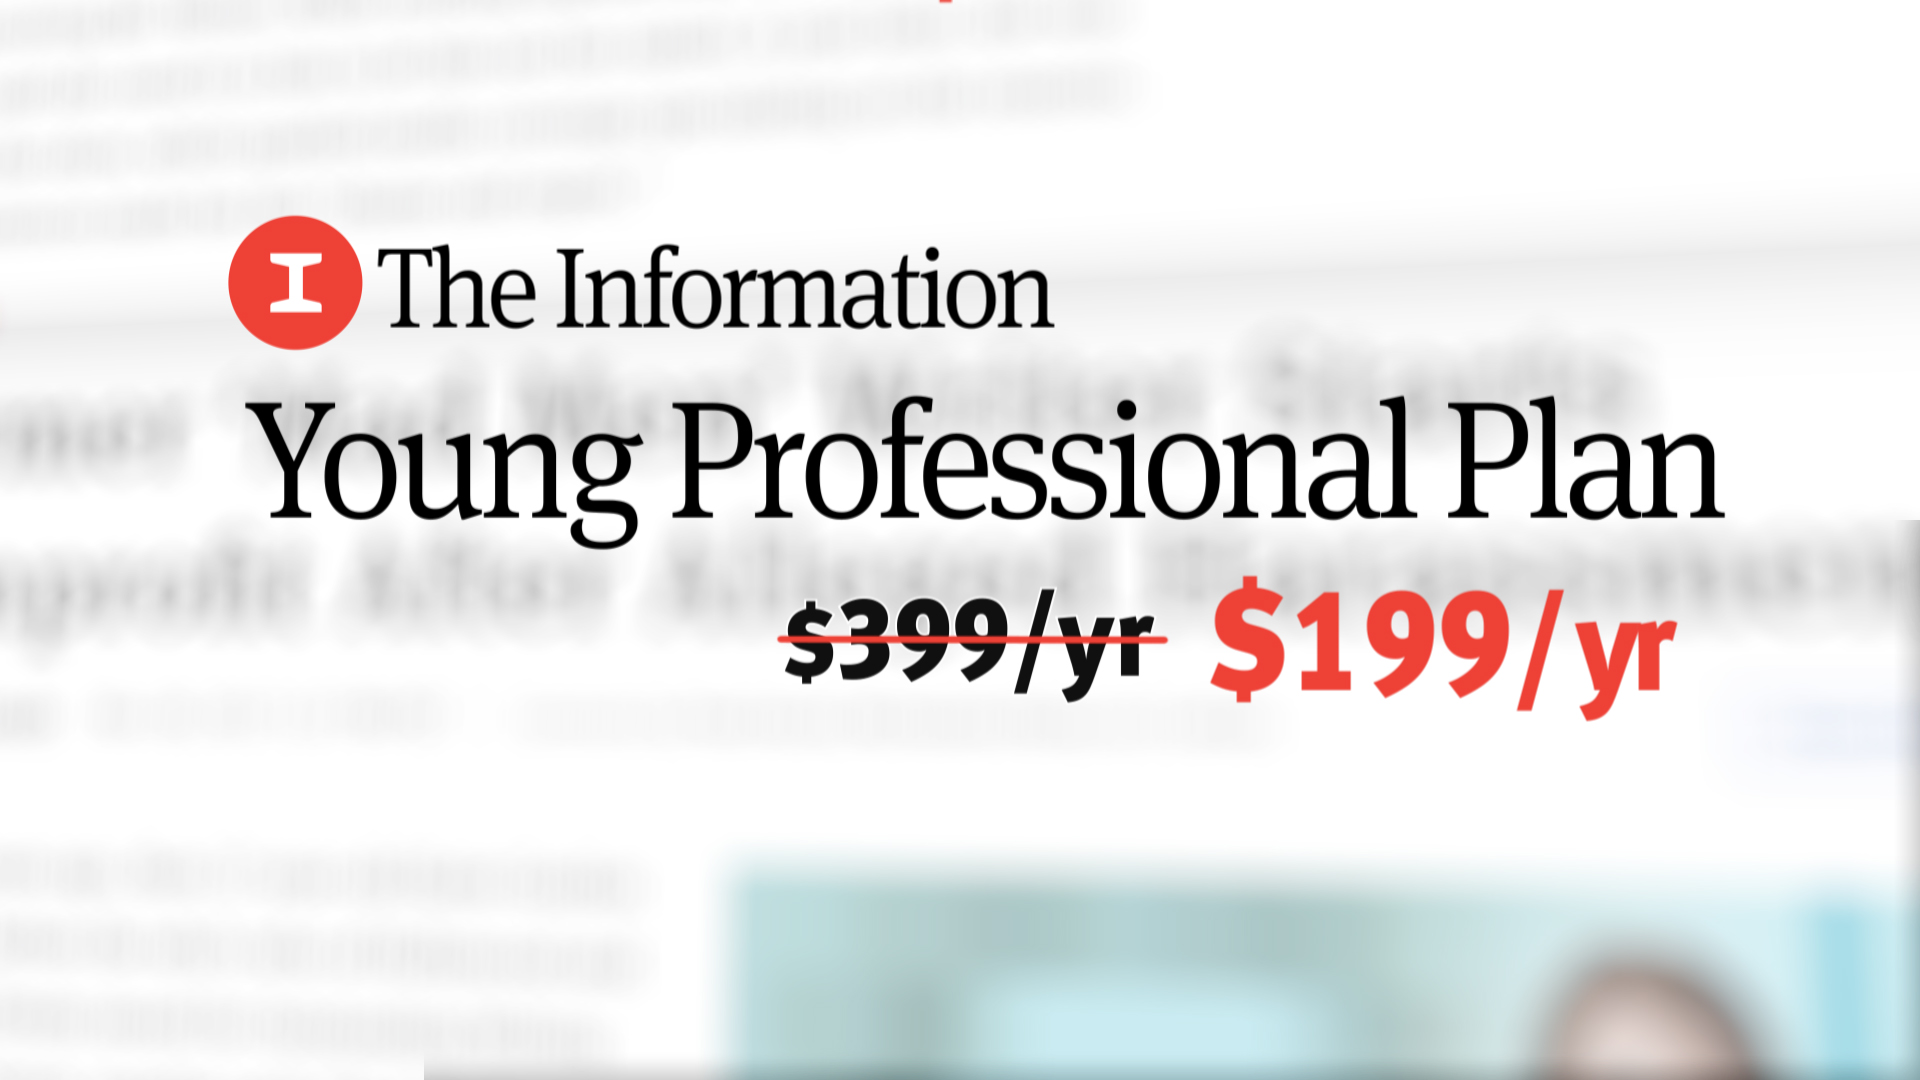 The Information Young Professional